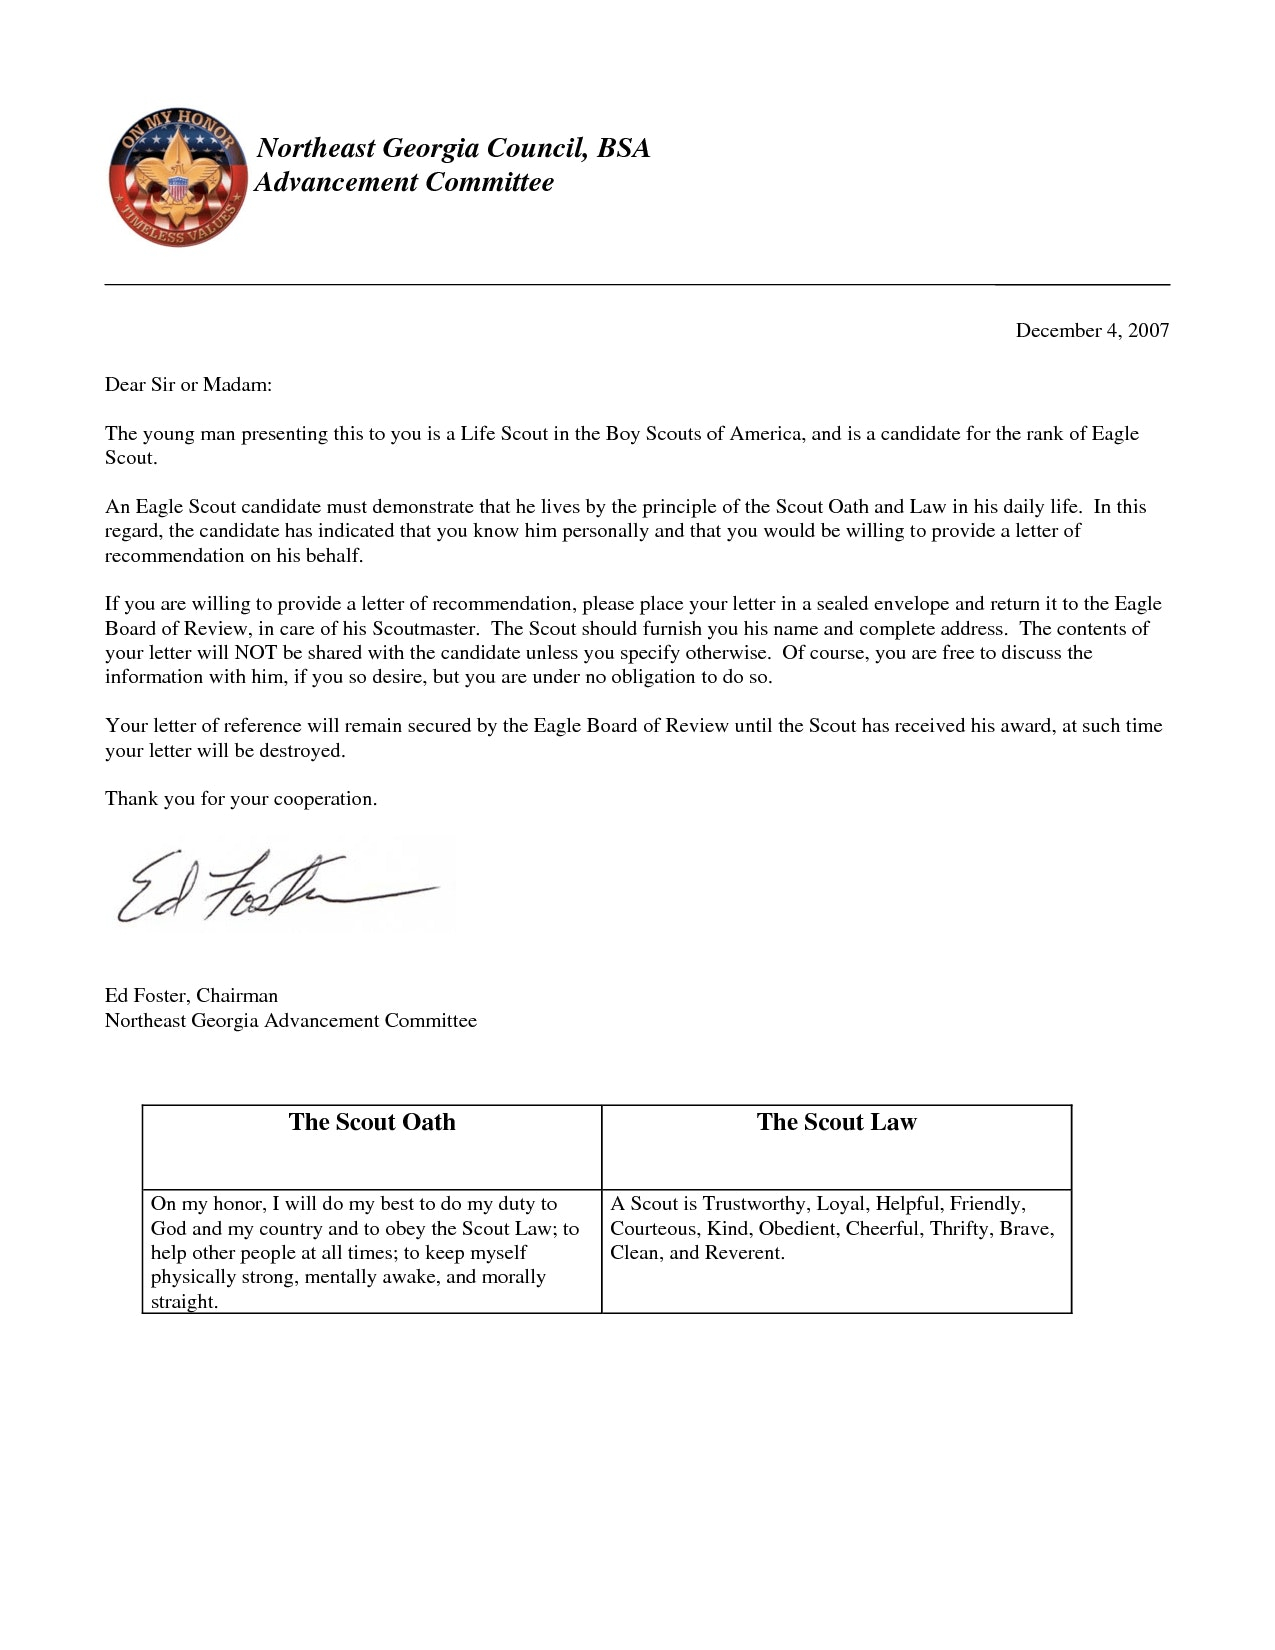 Pet Adoption Letter Template - Sample Eagle Scout Letter Of Re Mendation Request Acurnamedia